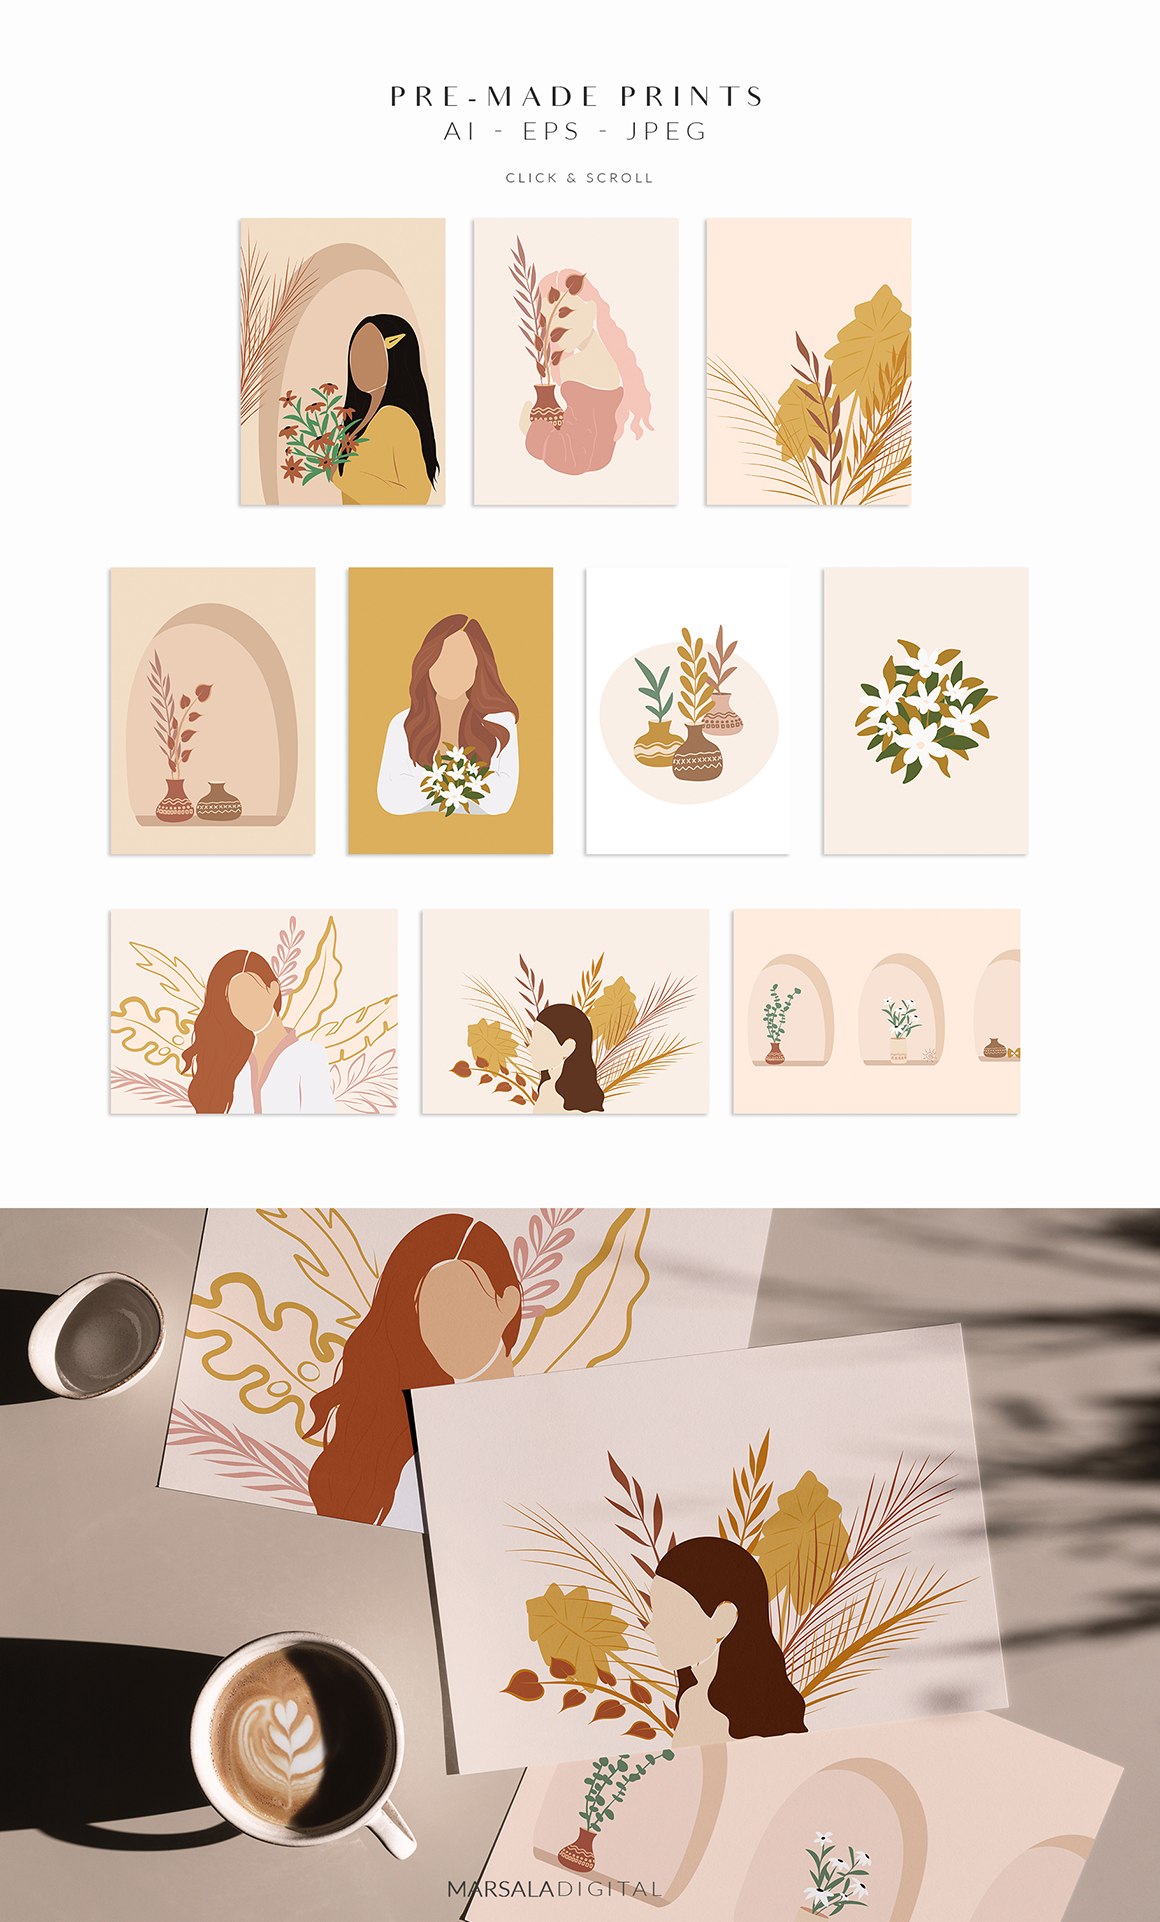 Abstract Women Illustrations Collection V2